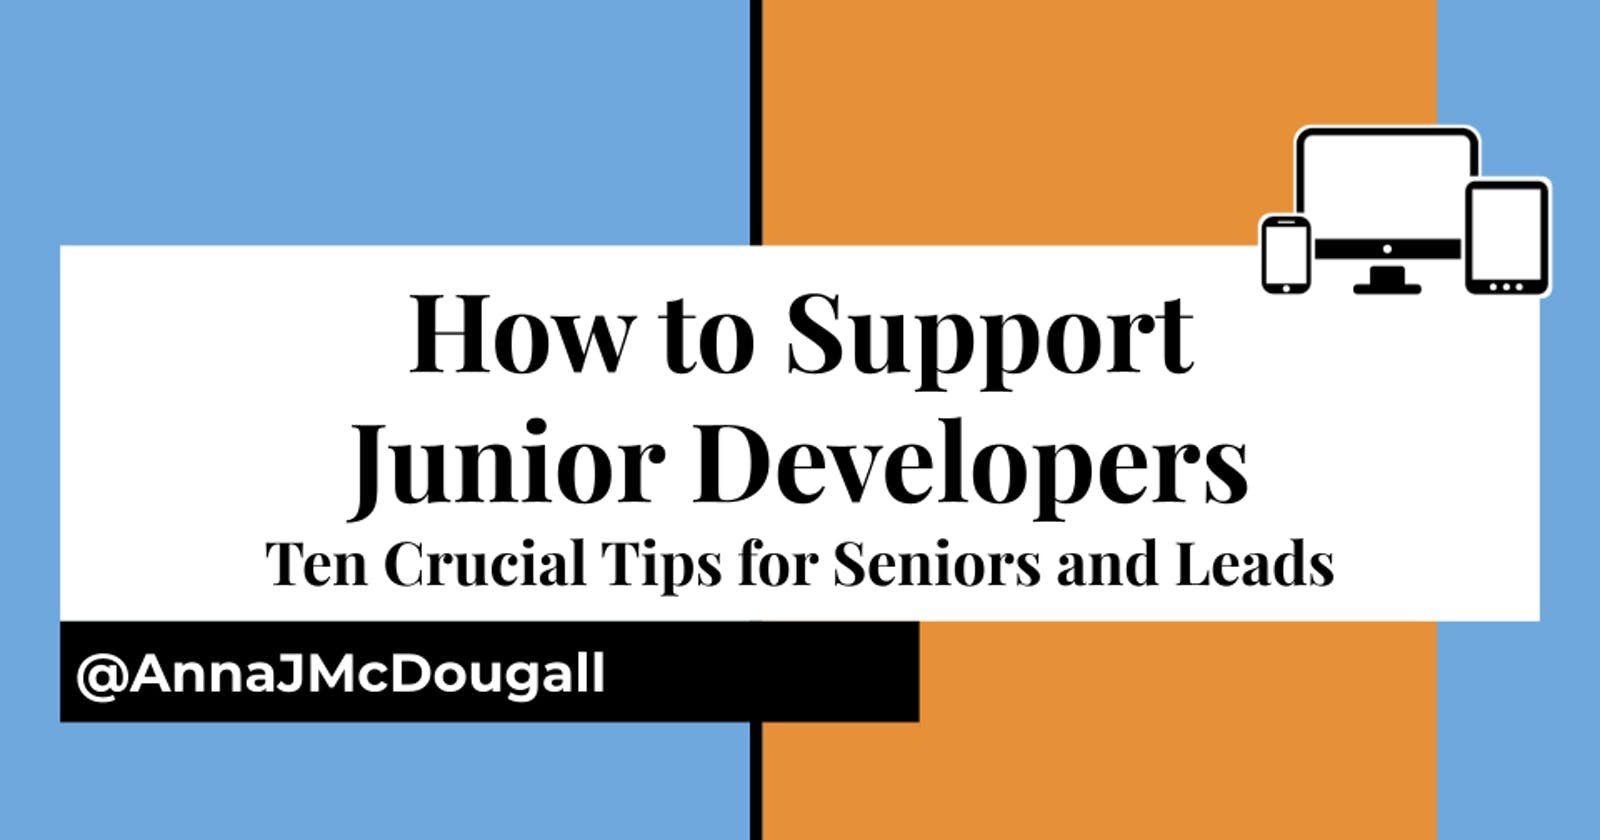 How to Support Junior Developers